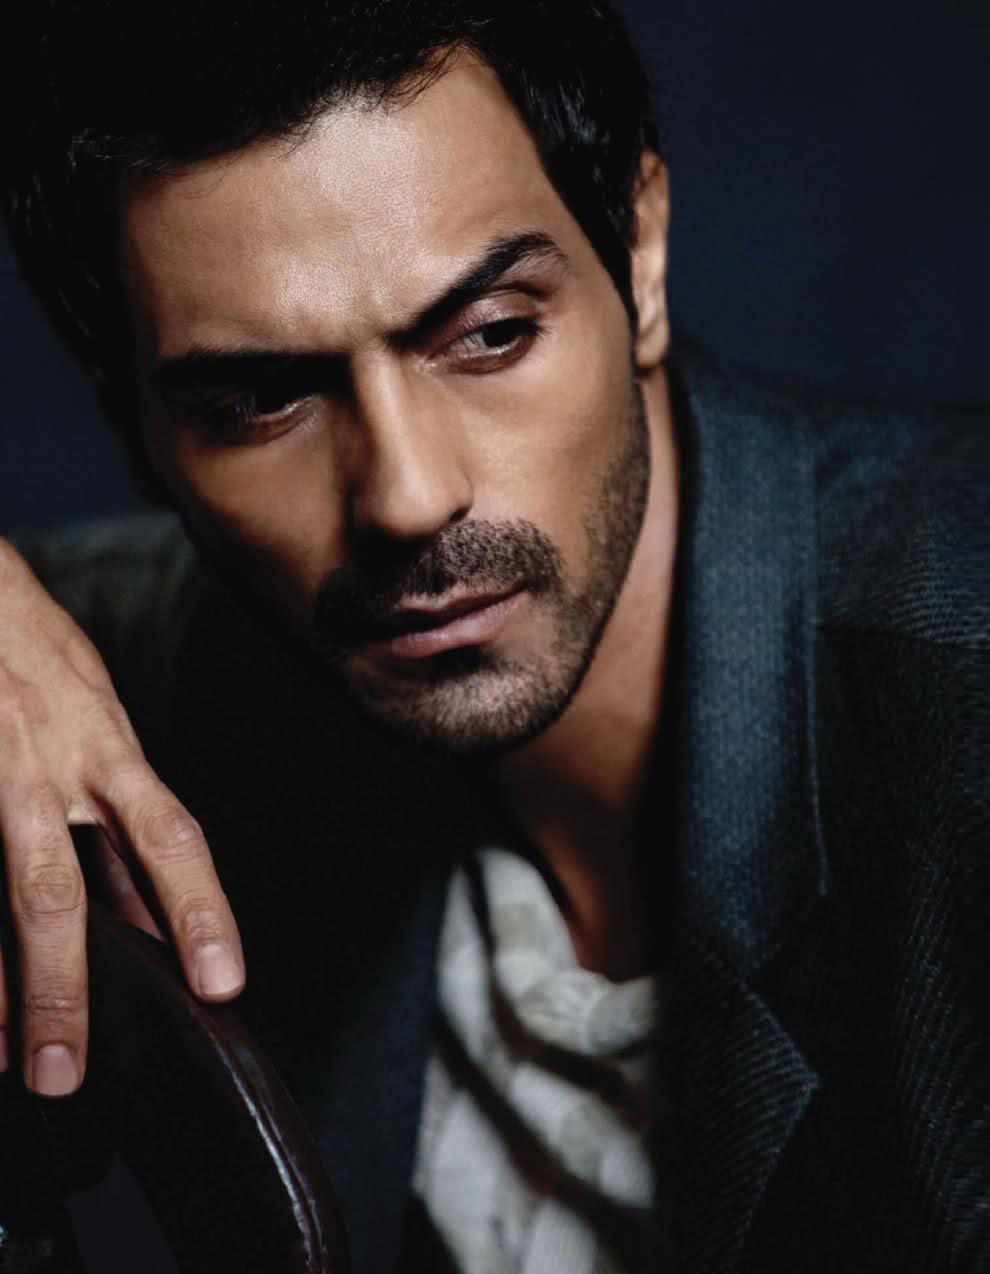 Arjun rampal hot photo Box Office Capsule - Official Site